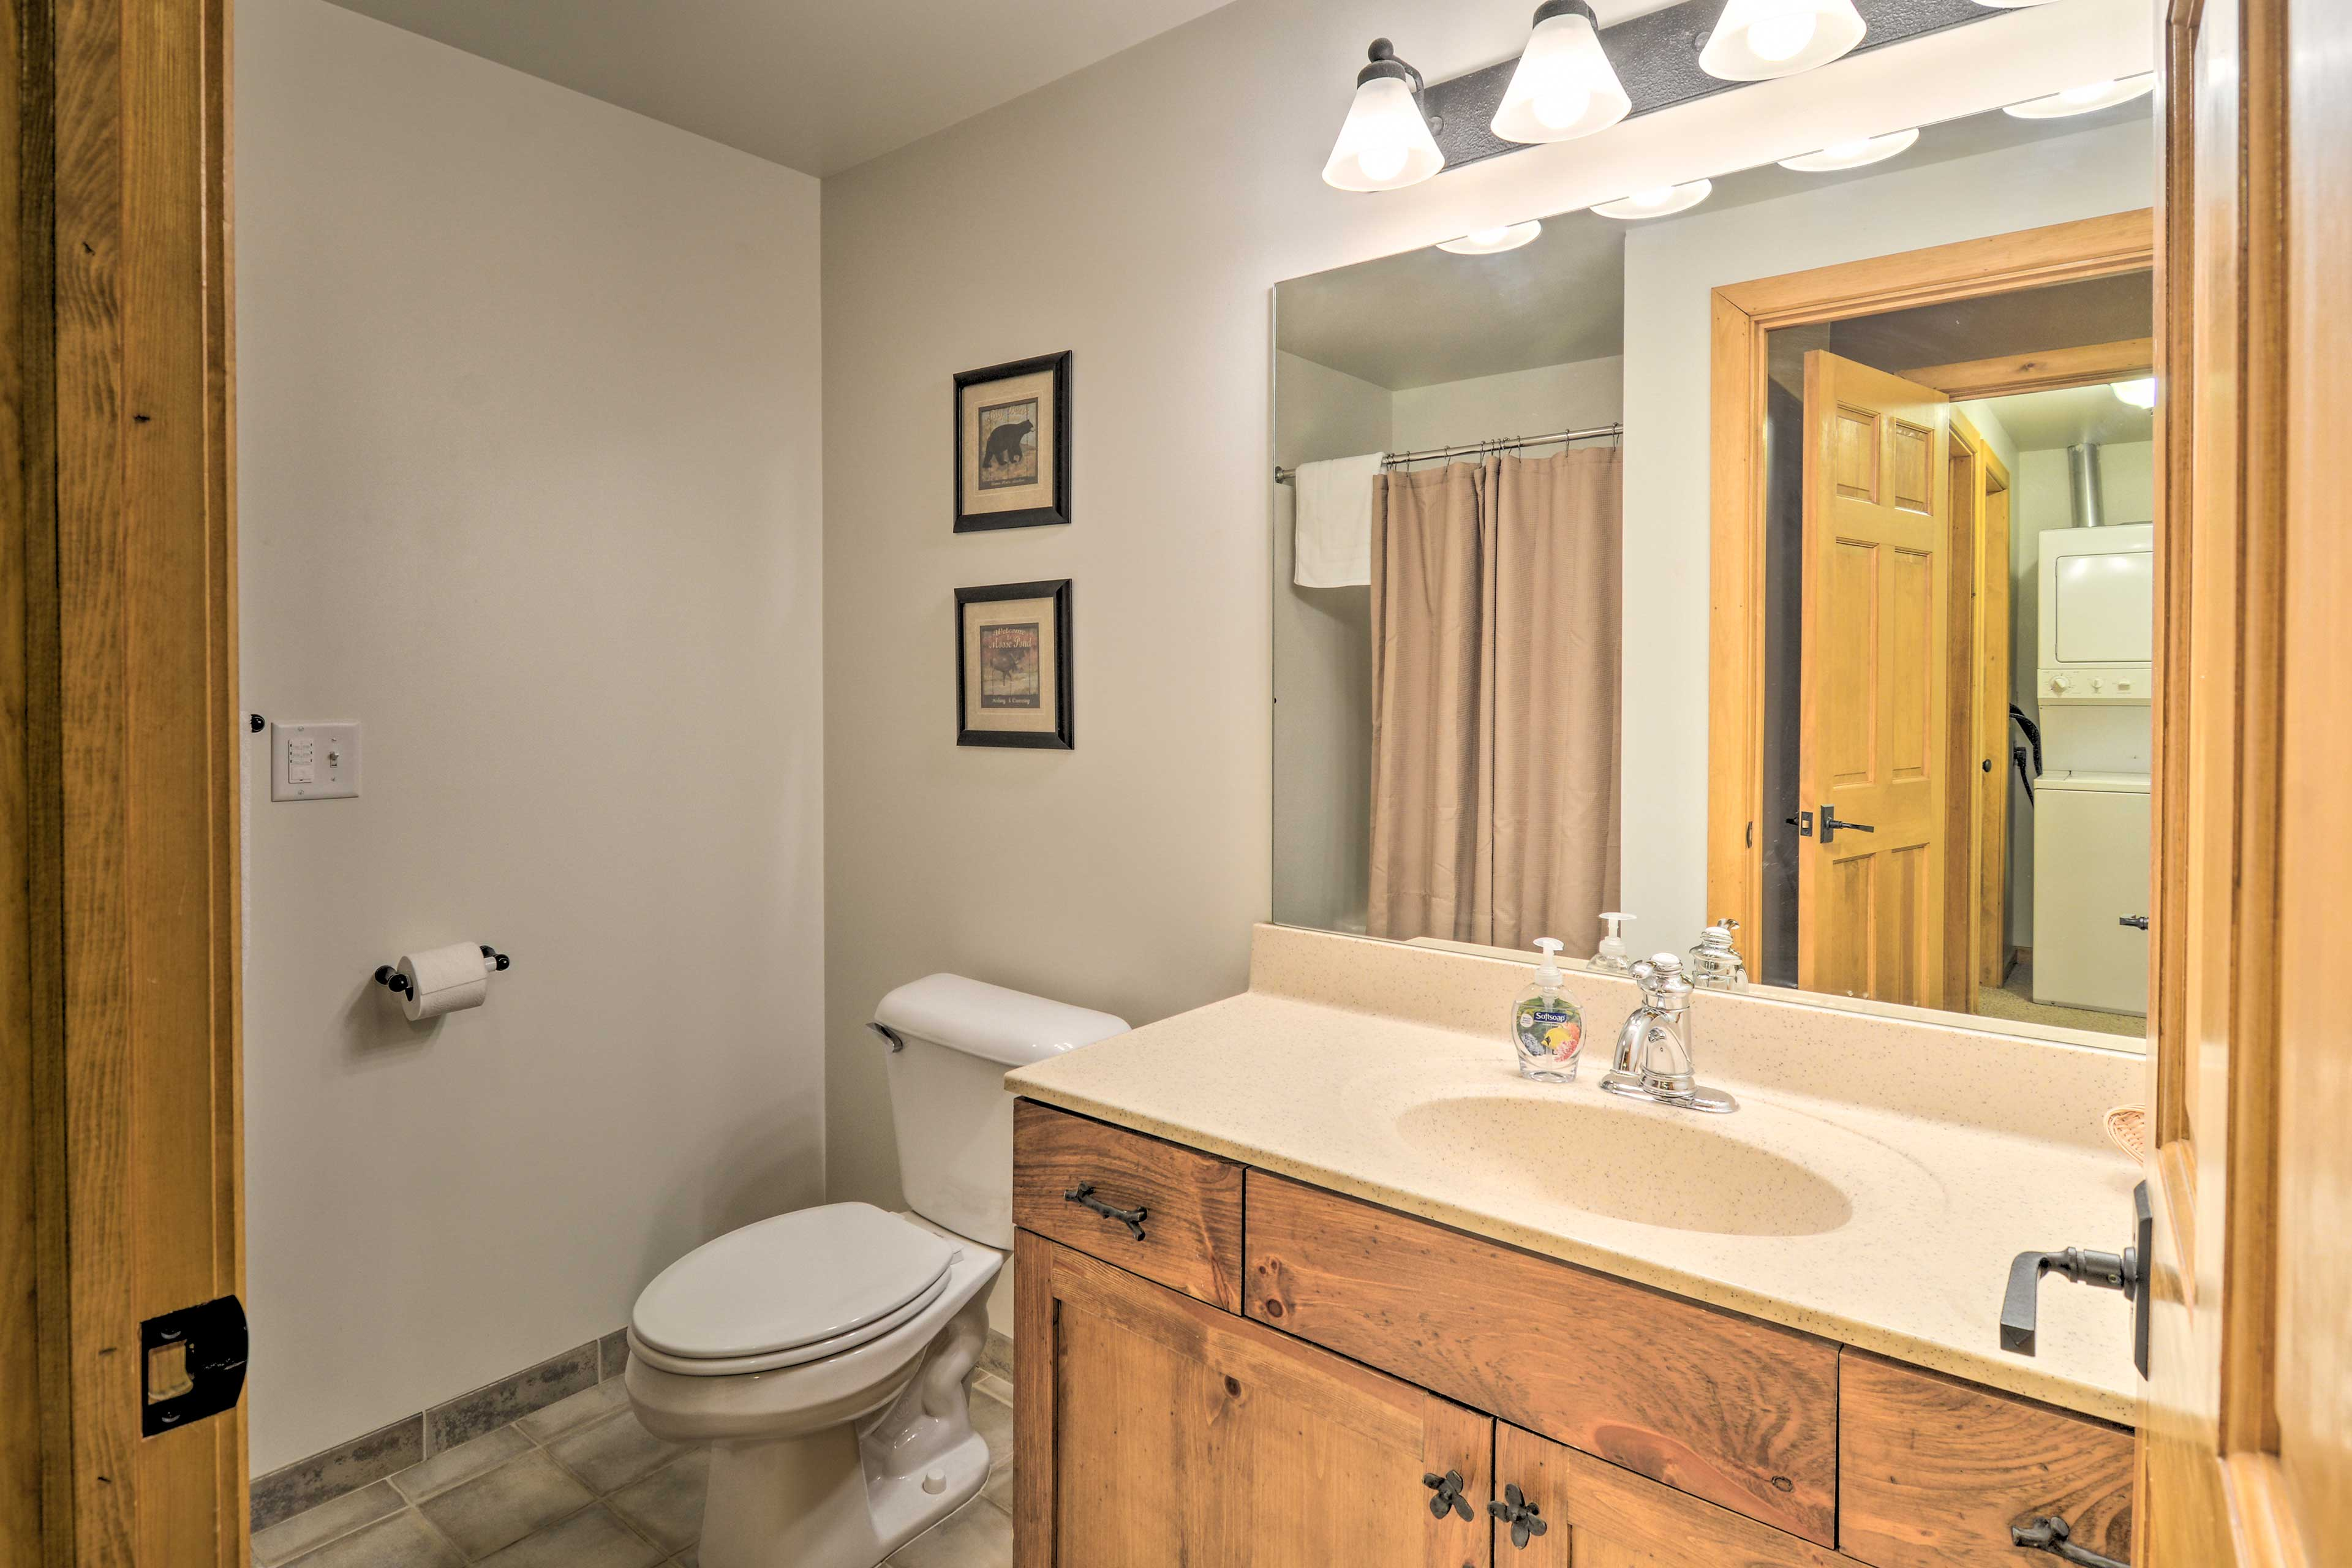 The home is equipped with 3 bathrooms and 1 half bath.